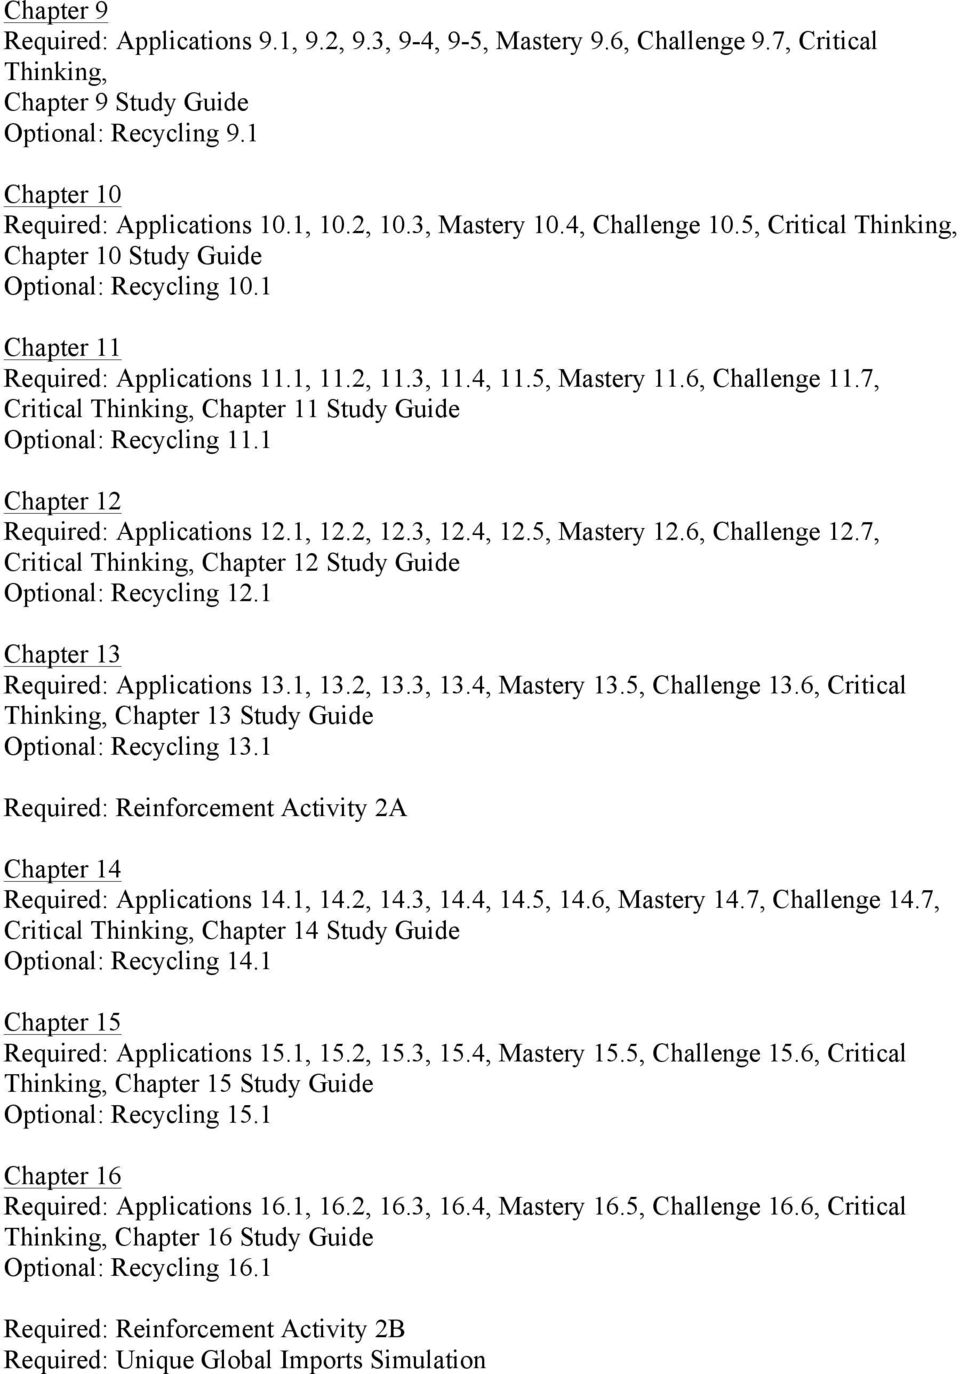 7, Critical Thinking, Chapter 11 Study Guide Optional: Recycling 11.1 Chapter 12 Required: Applications 12.1, 12.2, 12.3, 12.4, 12.5, Mastery 12.6, Challenge 12.